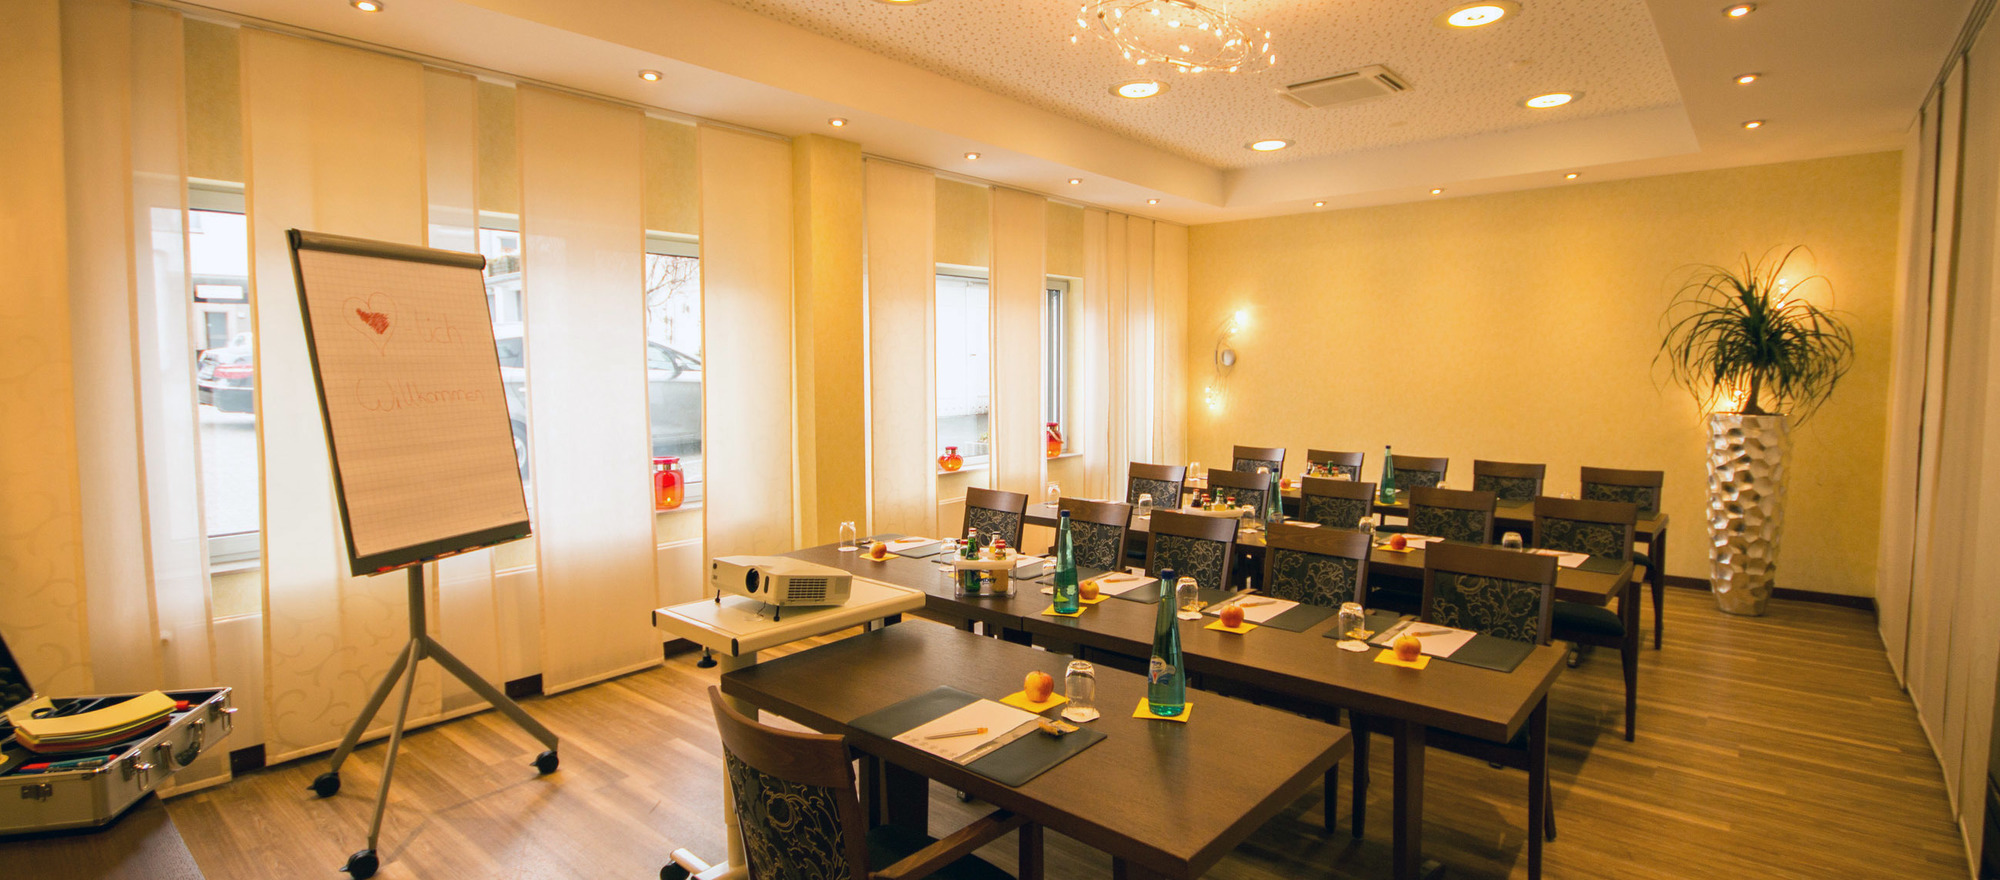 Room Pluto is situated on the ground floor and equipped for 16 persons at the 4-star Ringhotel Drees in Dortmund